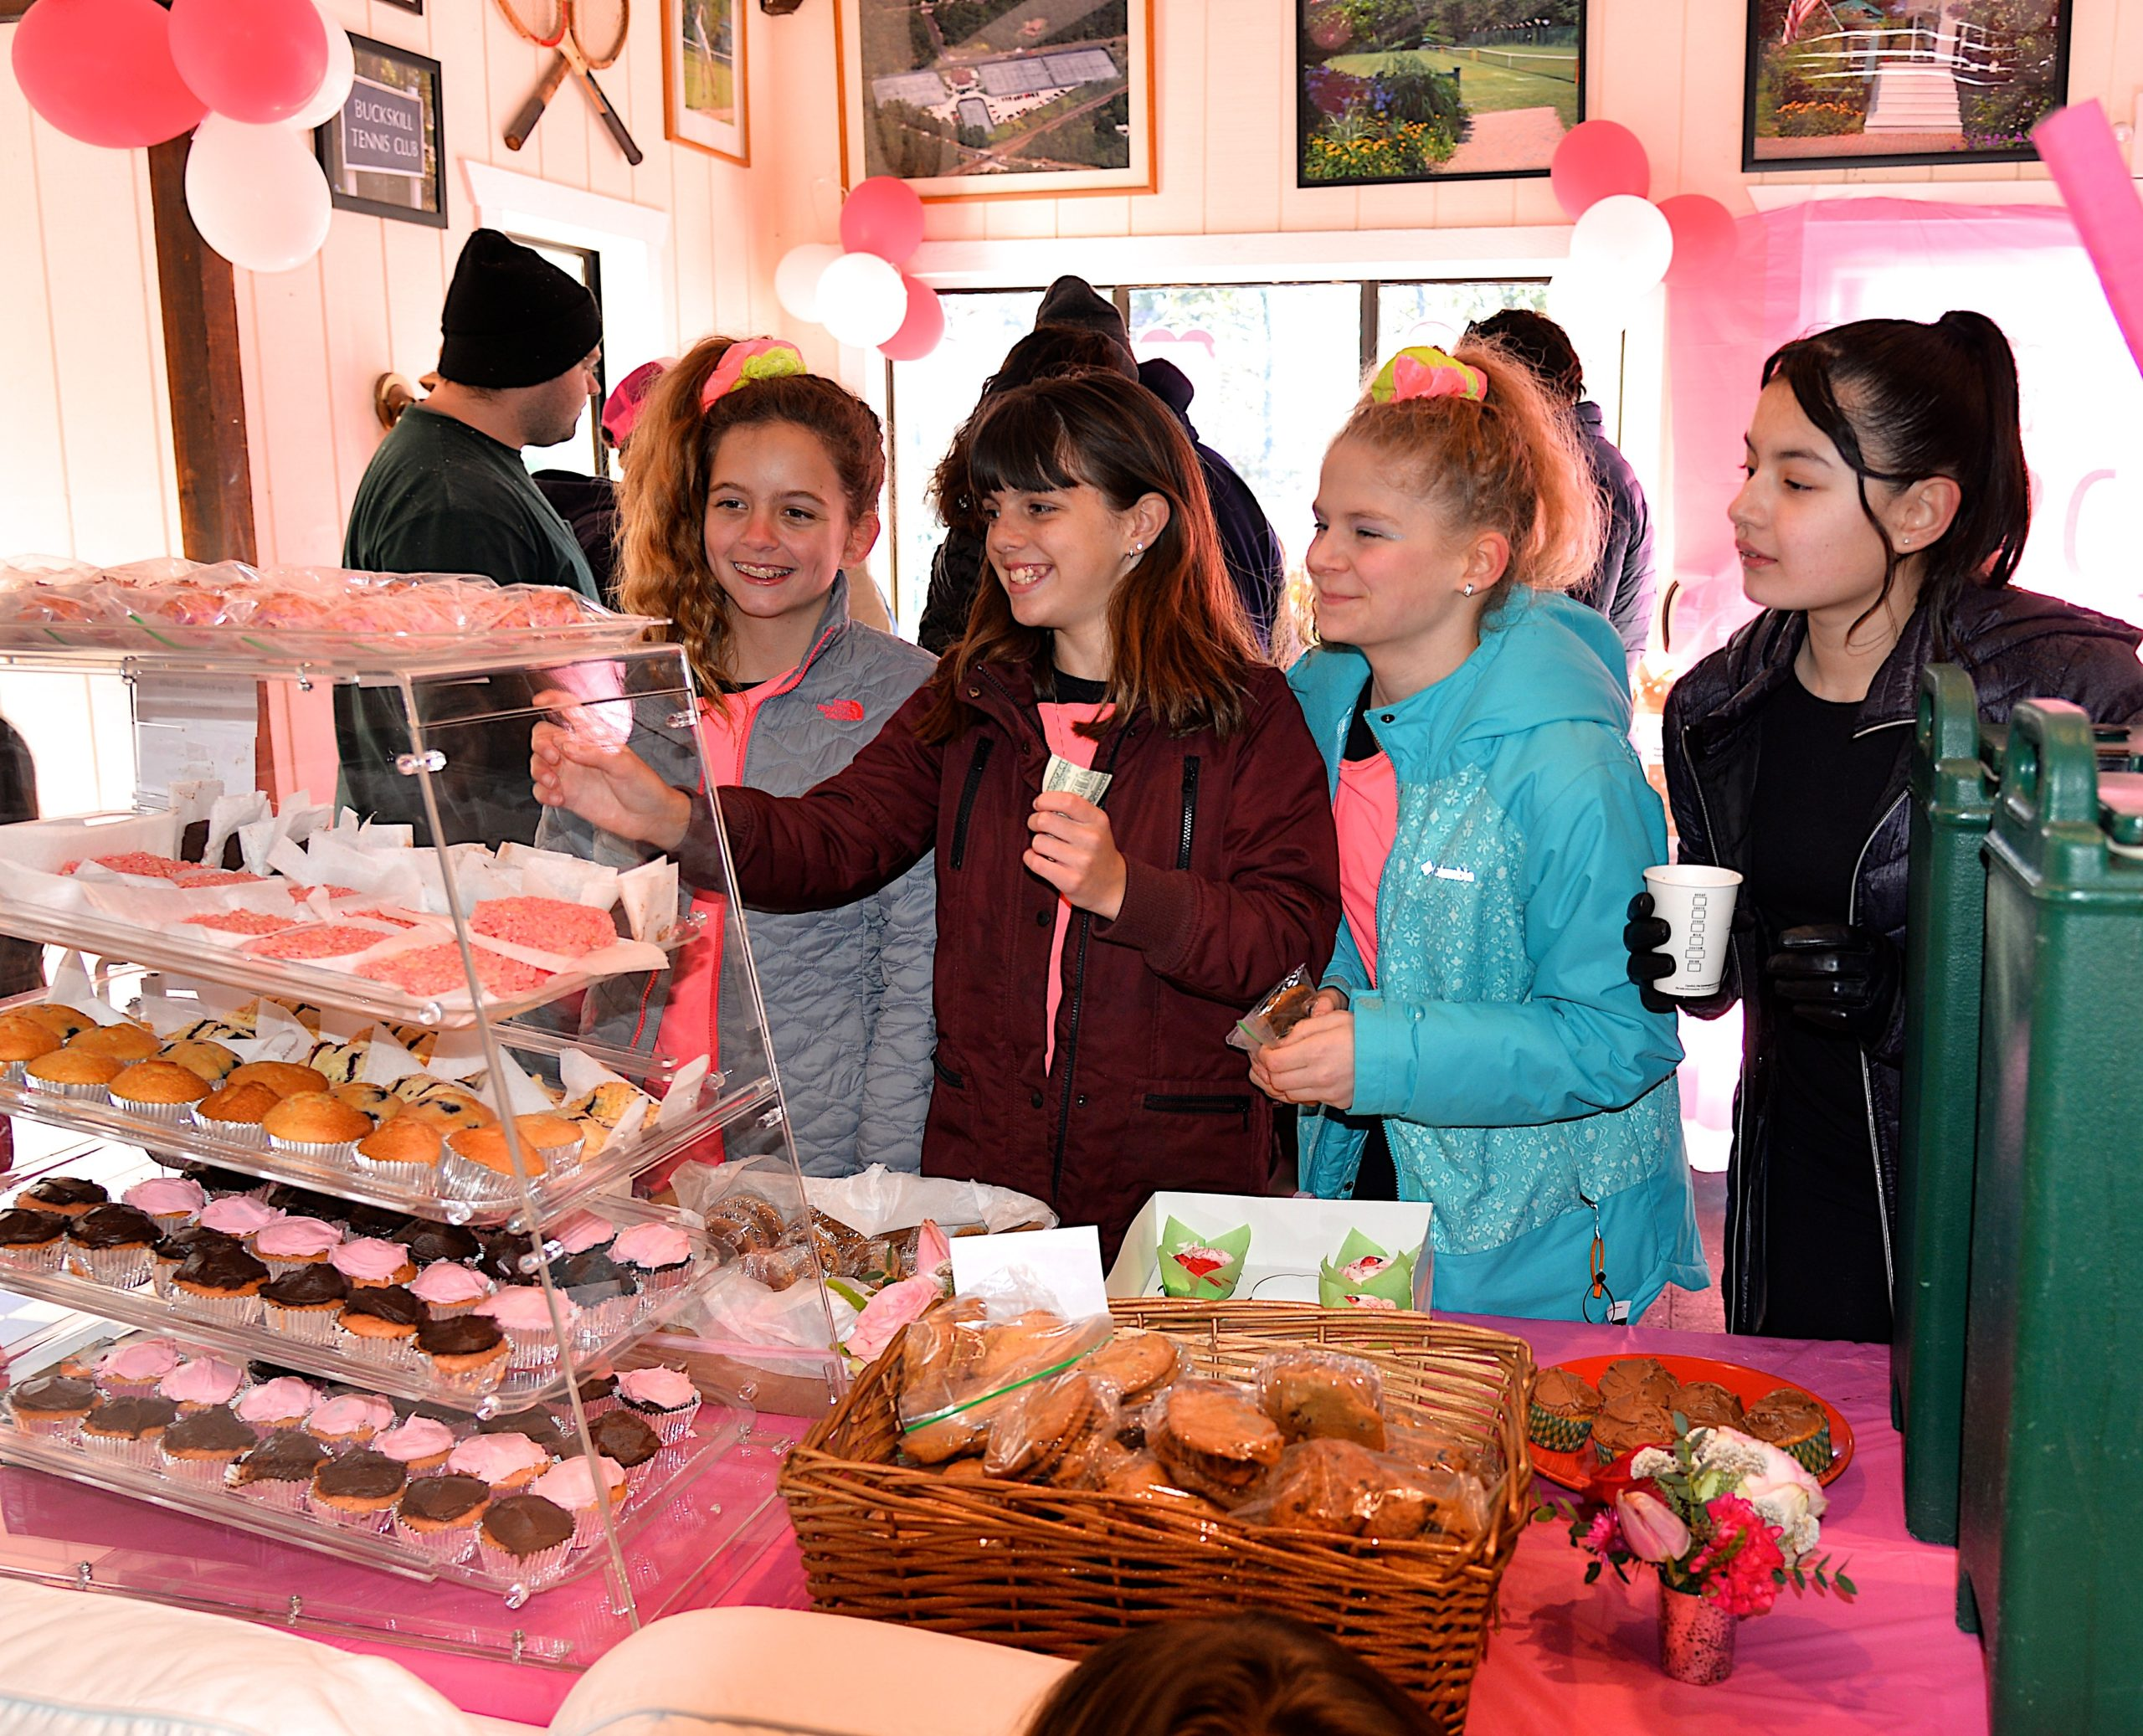 The ninth annual Katy's Courage skate-a-thon was held at the Buckskill Winter Club Sunday, raising funds for the education, support and pediatric cancer research. Checking out the sweets at the bake sale are, Kelly Lynch, Emily Anderson, Zoe Weaver and Allandra Marin. KYRIL BROMLEY